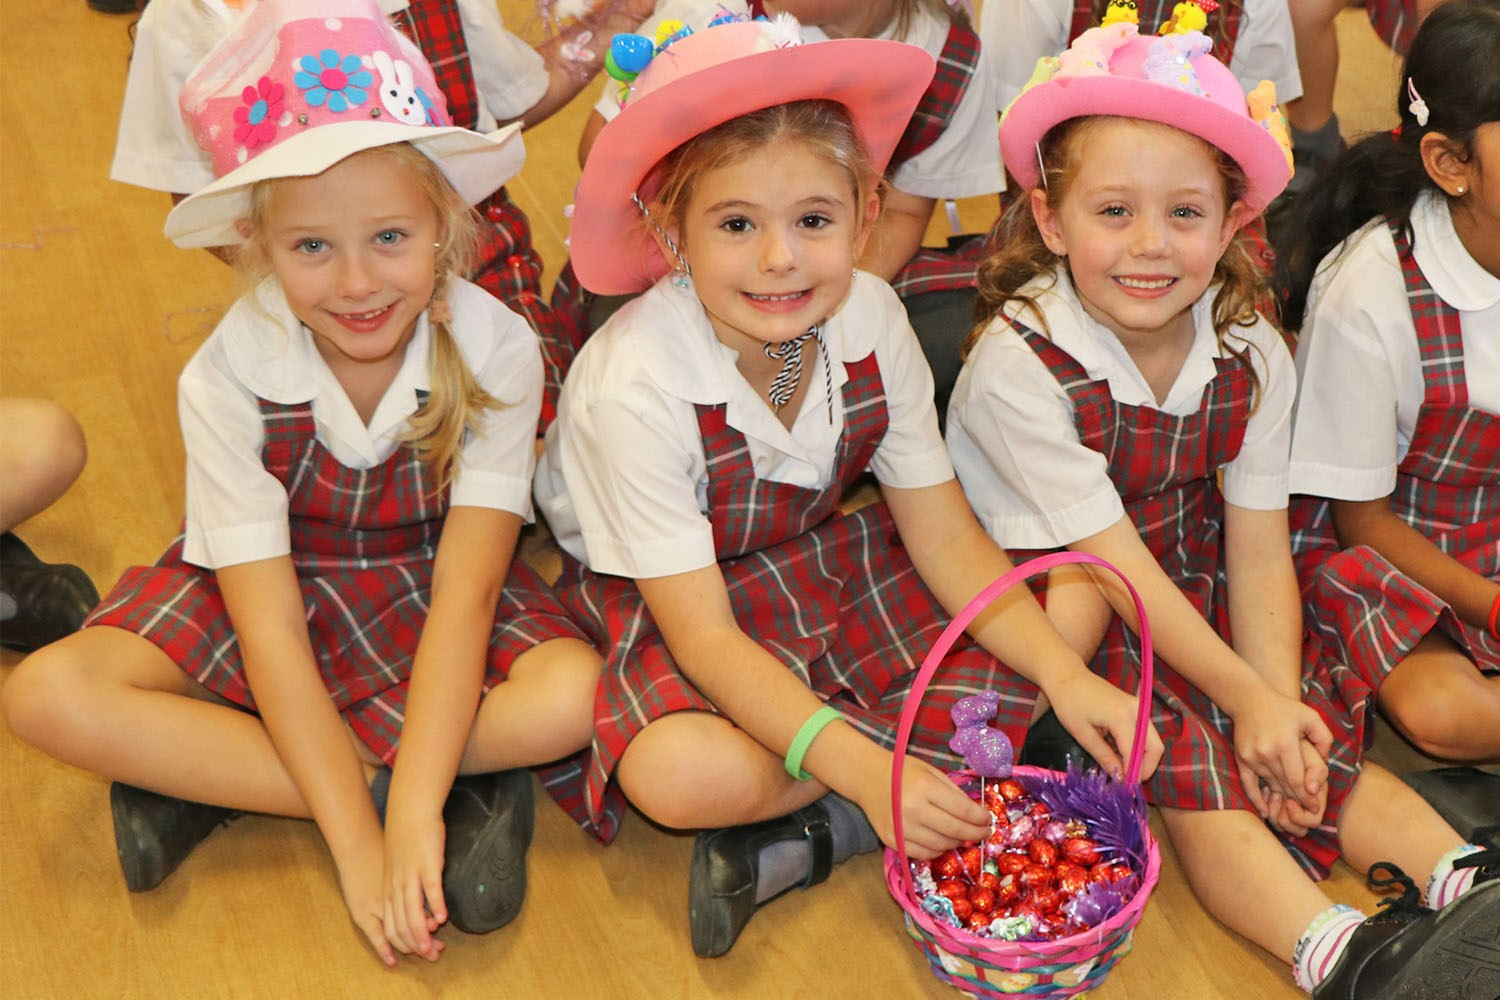 Image:GALLERY: Easter hat parade at St Benedict's